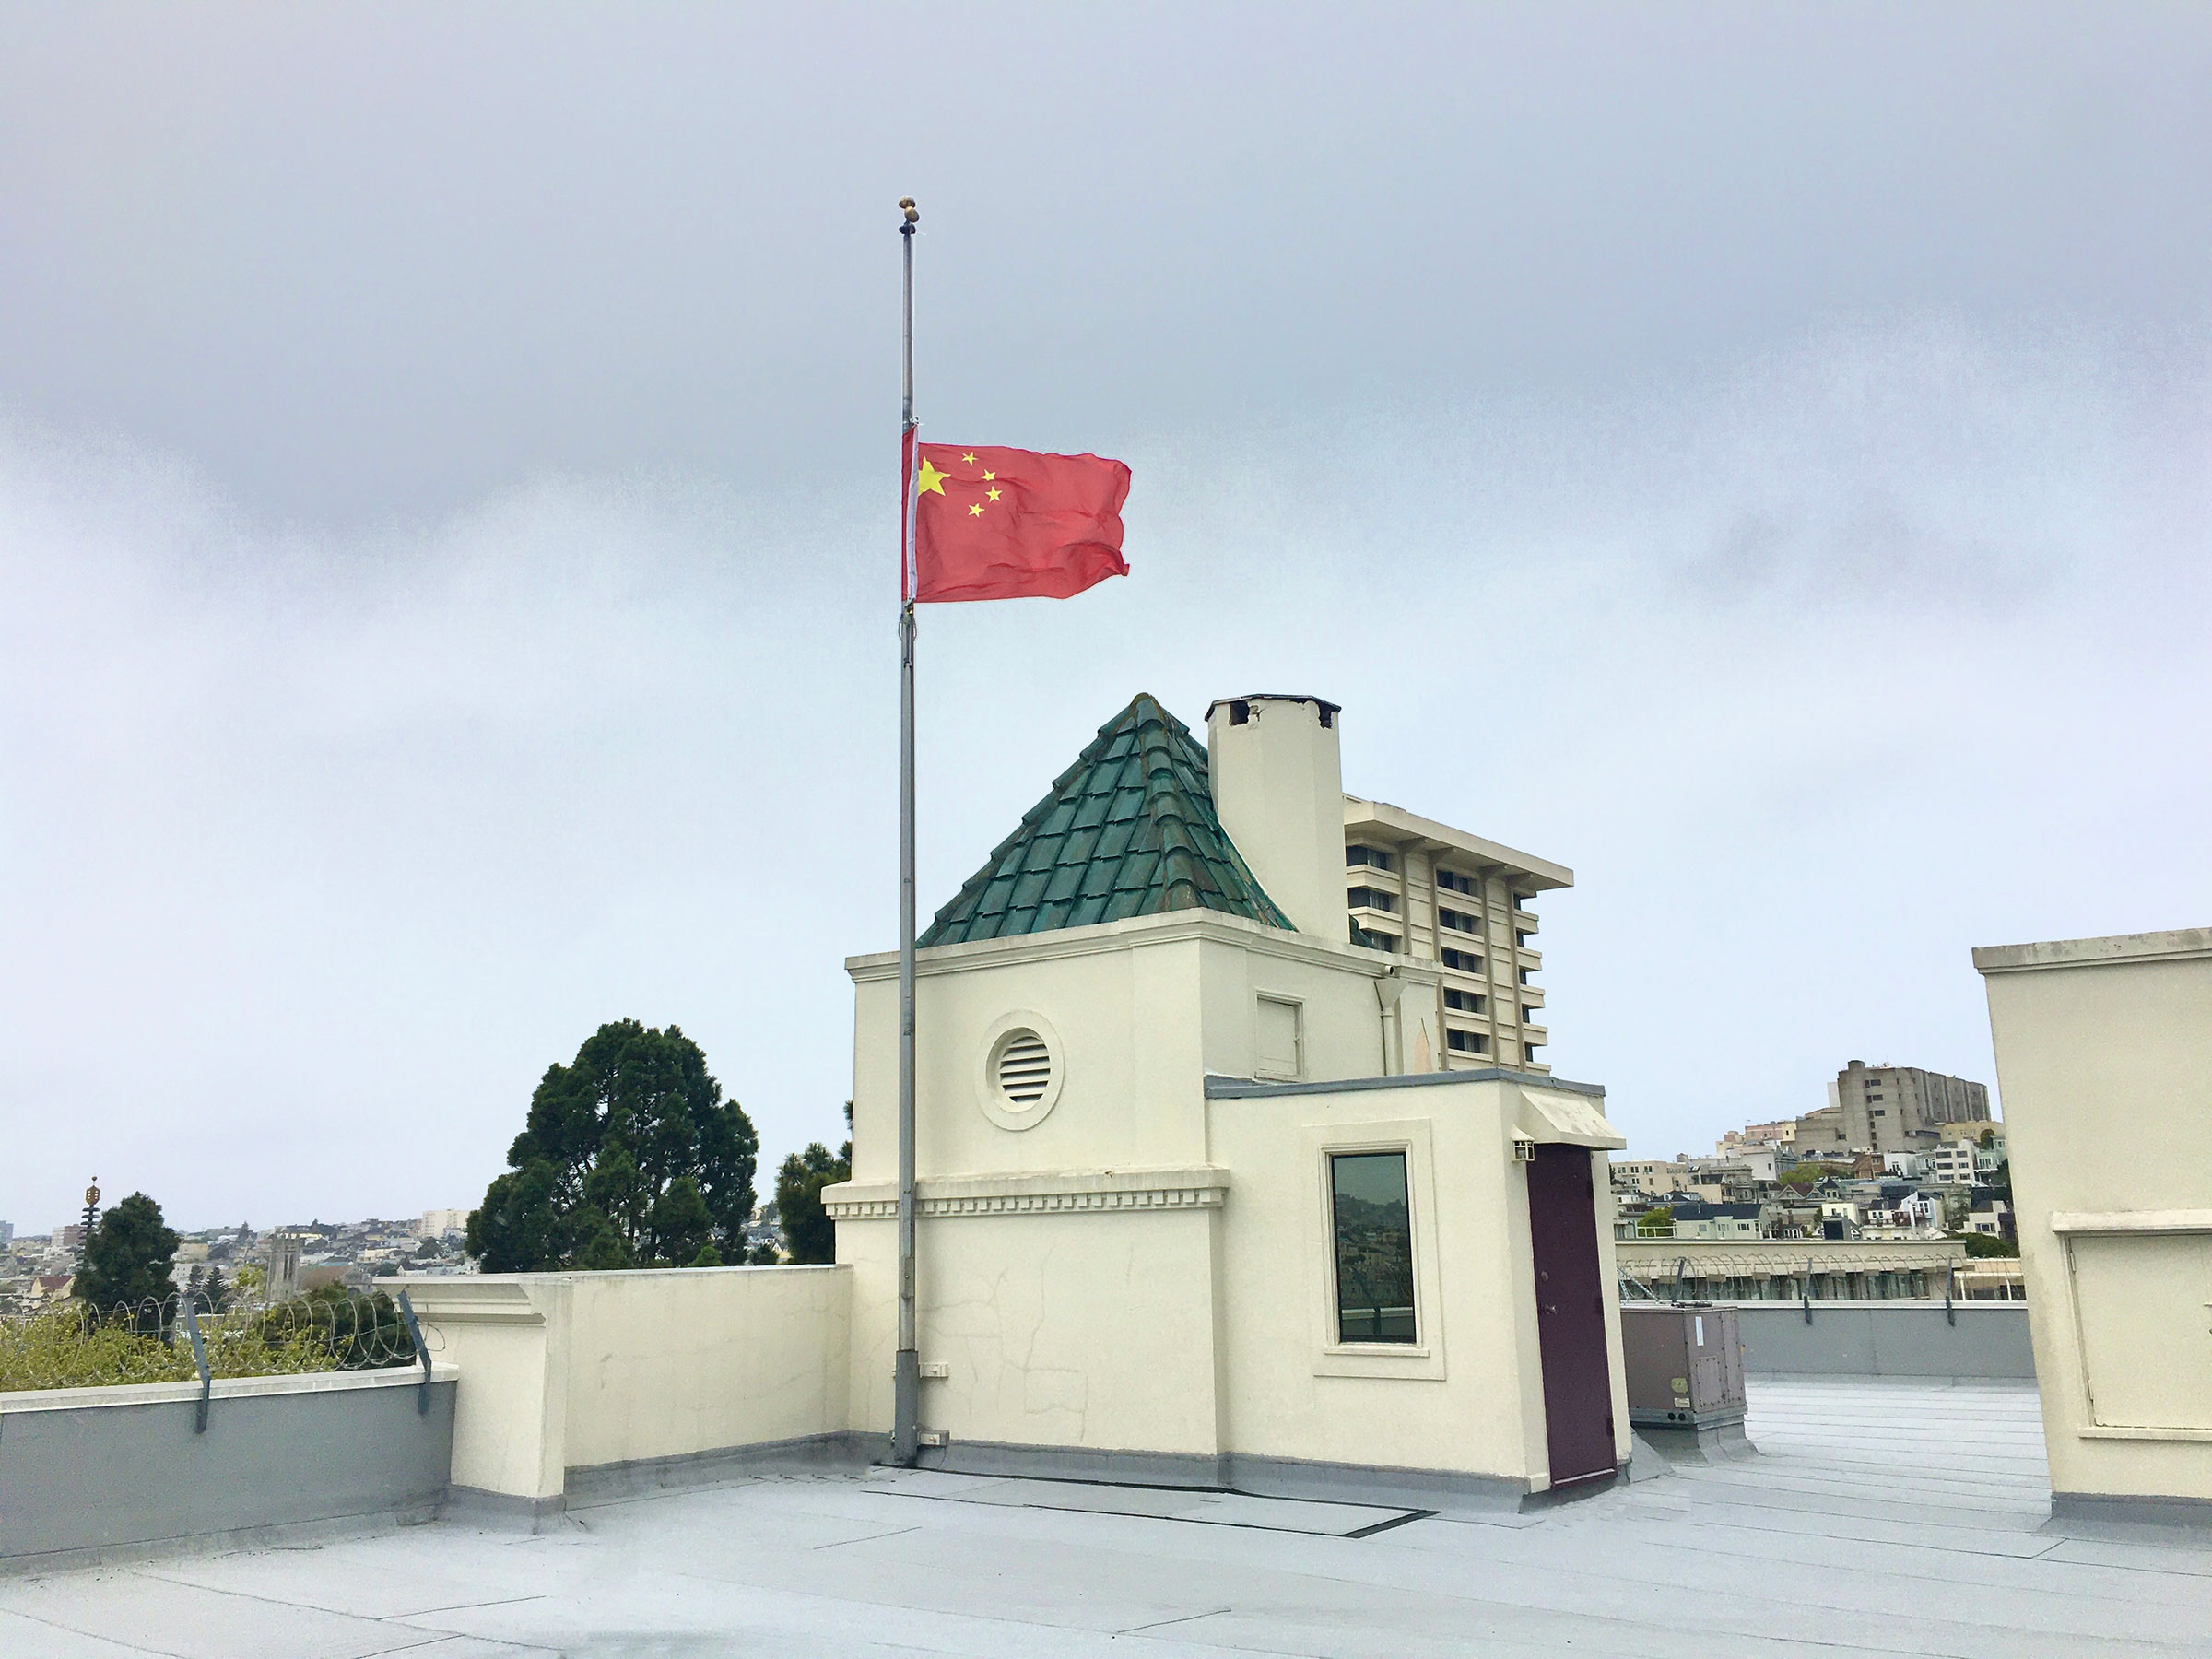 A Chinese national flag flies at half-mast to mourn for people who died in the fight against COVID-19 at the Consulate-General of the People's Republic of China in San Francisco on April 4, 2020.